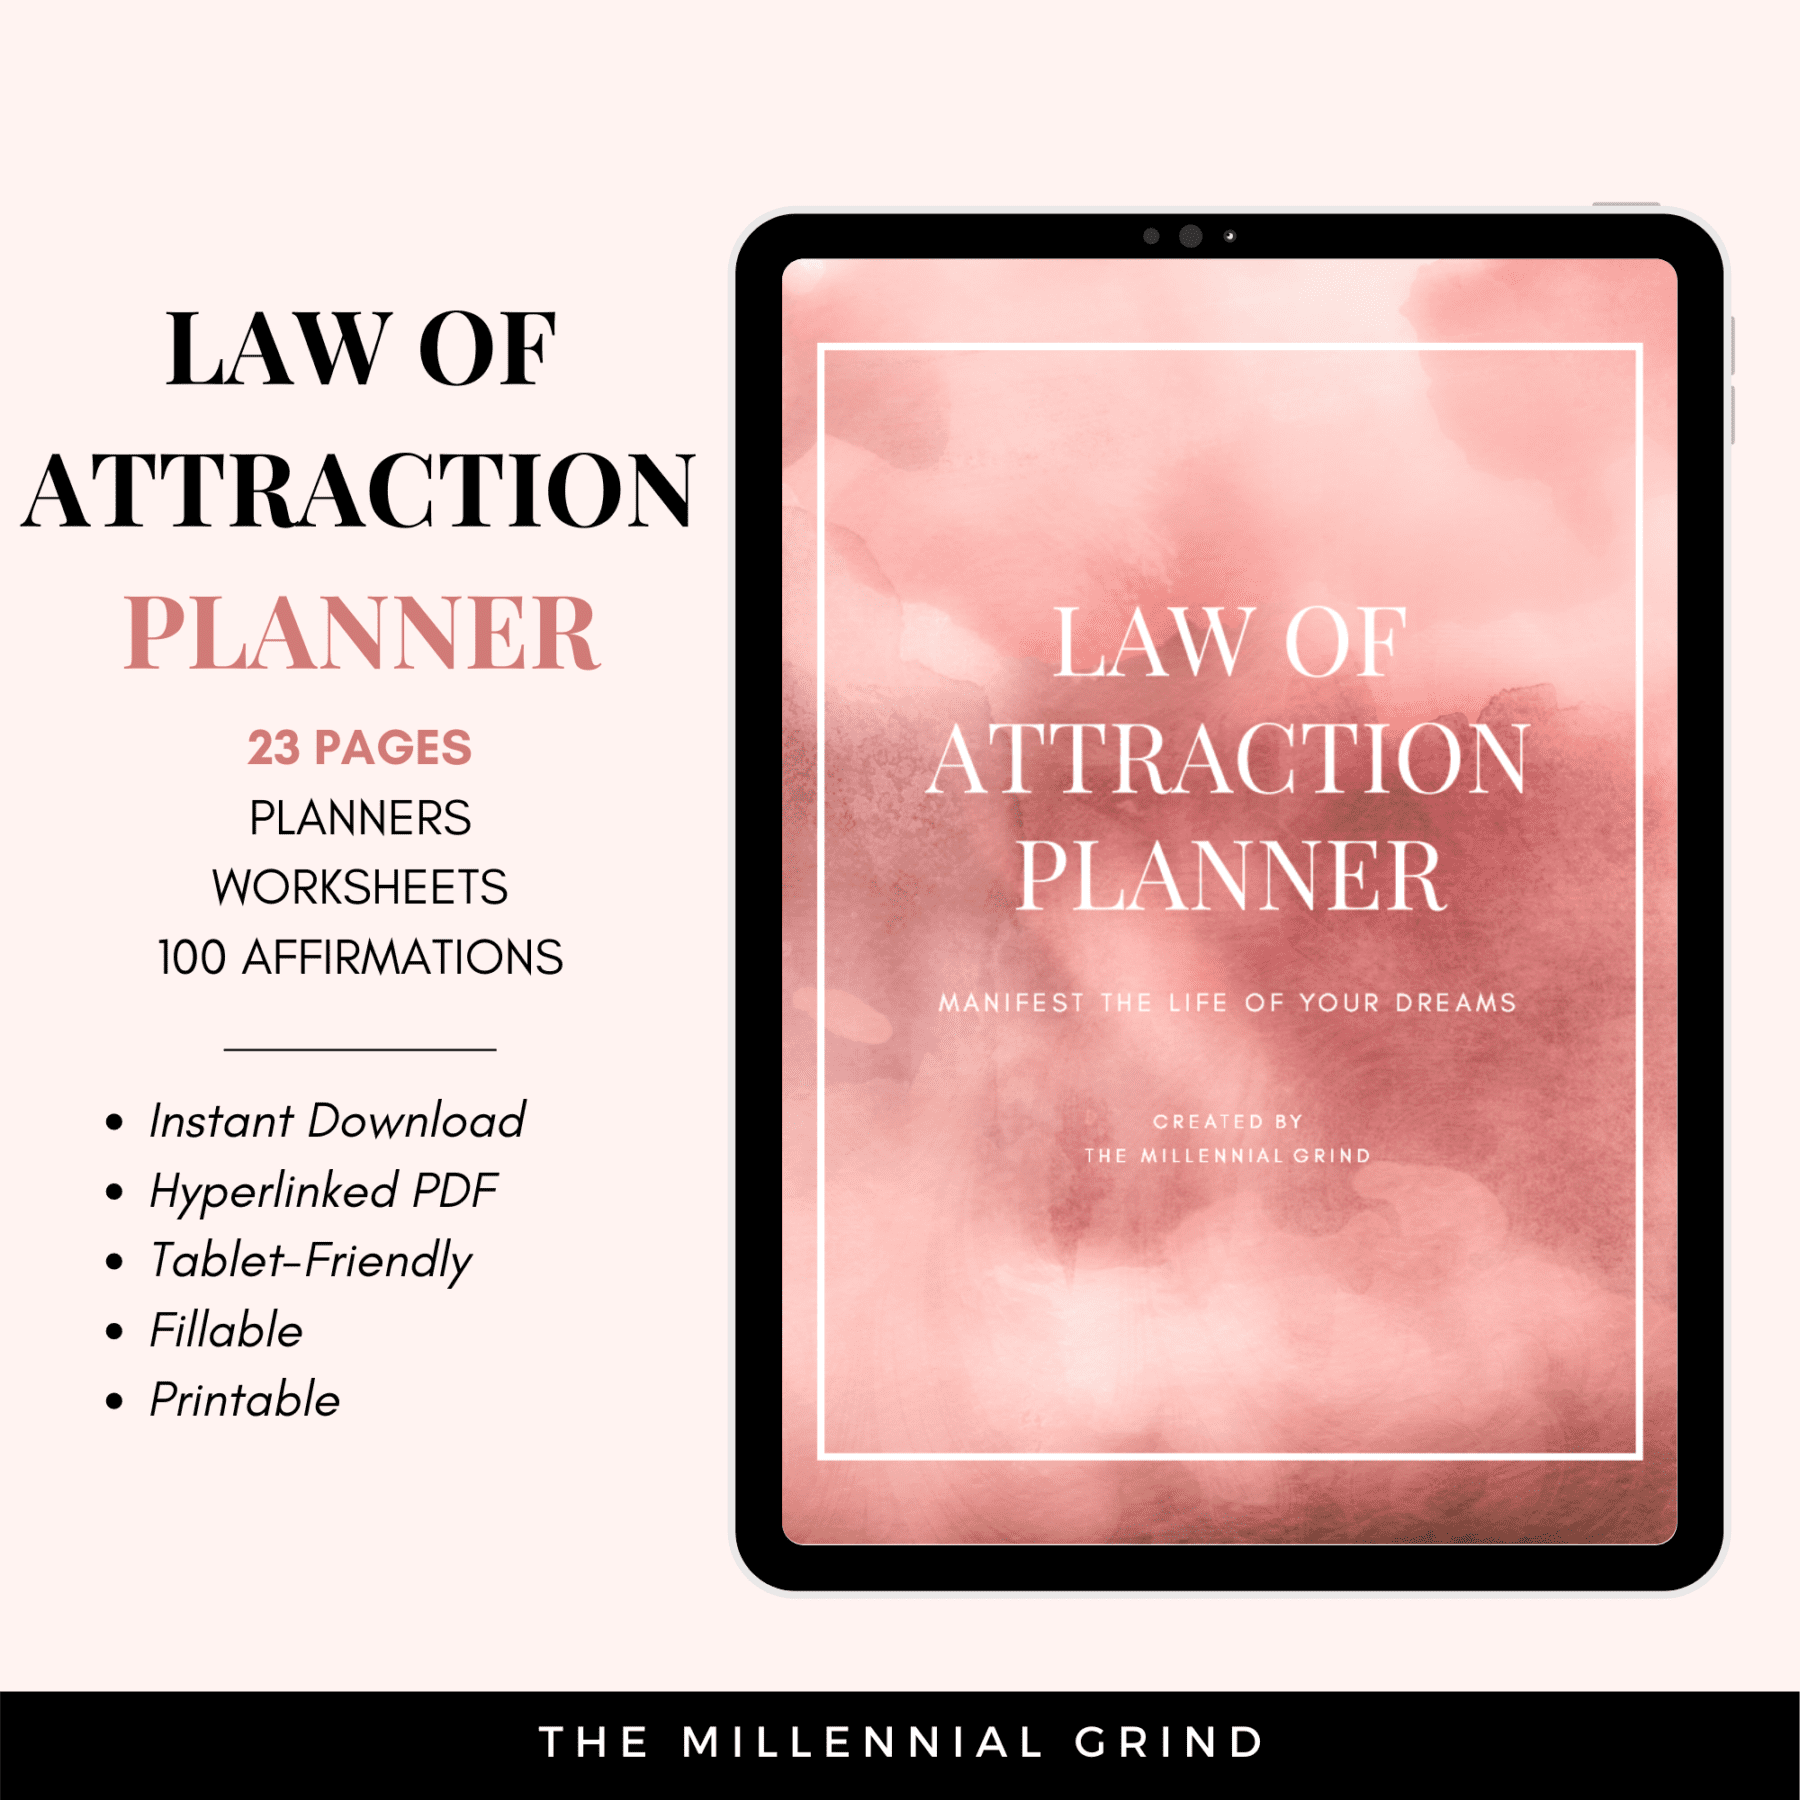 Product Images - Law of Attraction Planner